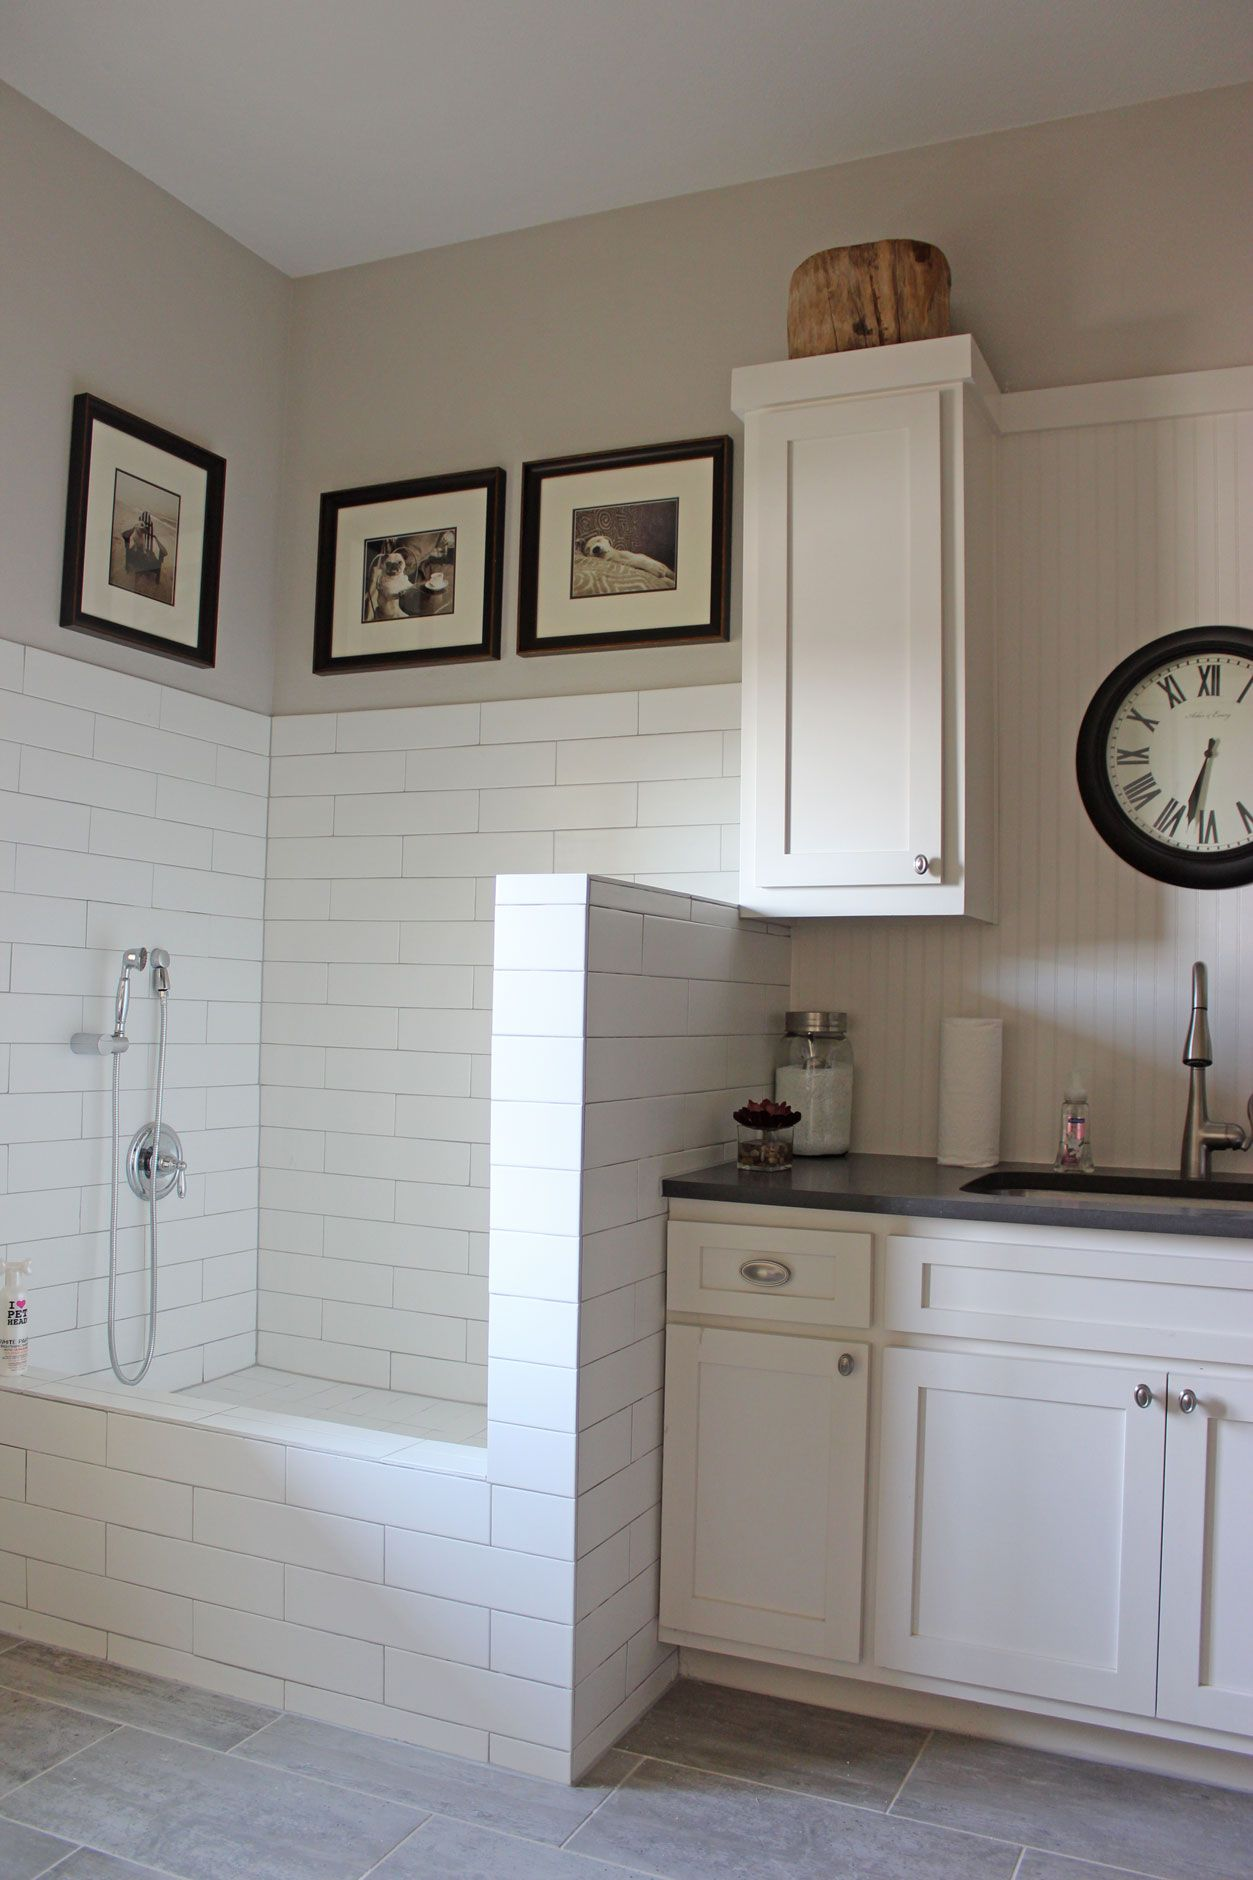 Decontamination Room Design: Burrows Cabinets White Painted Laundry Room Cabinets With